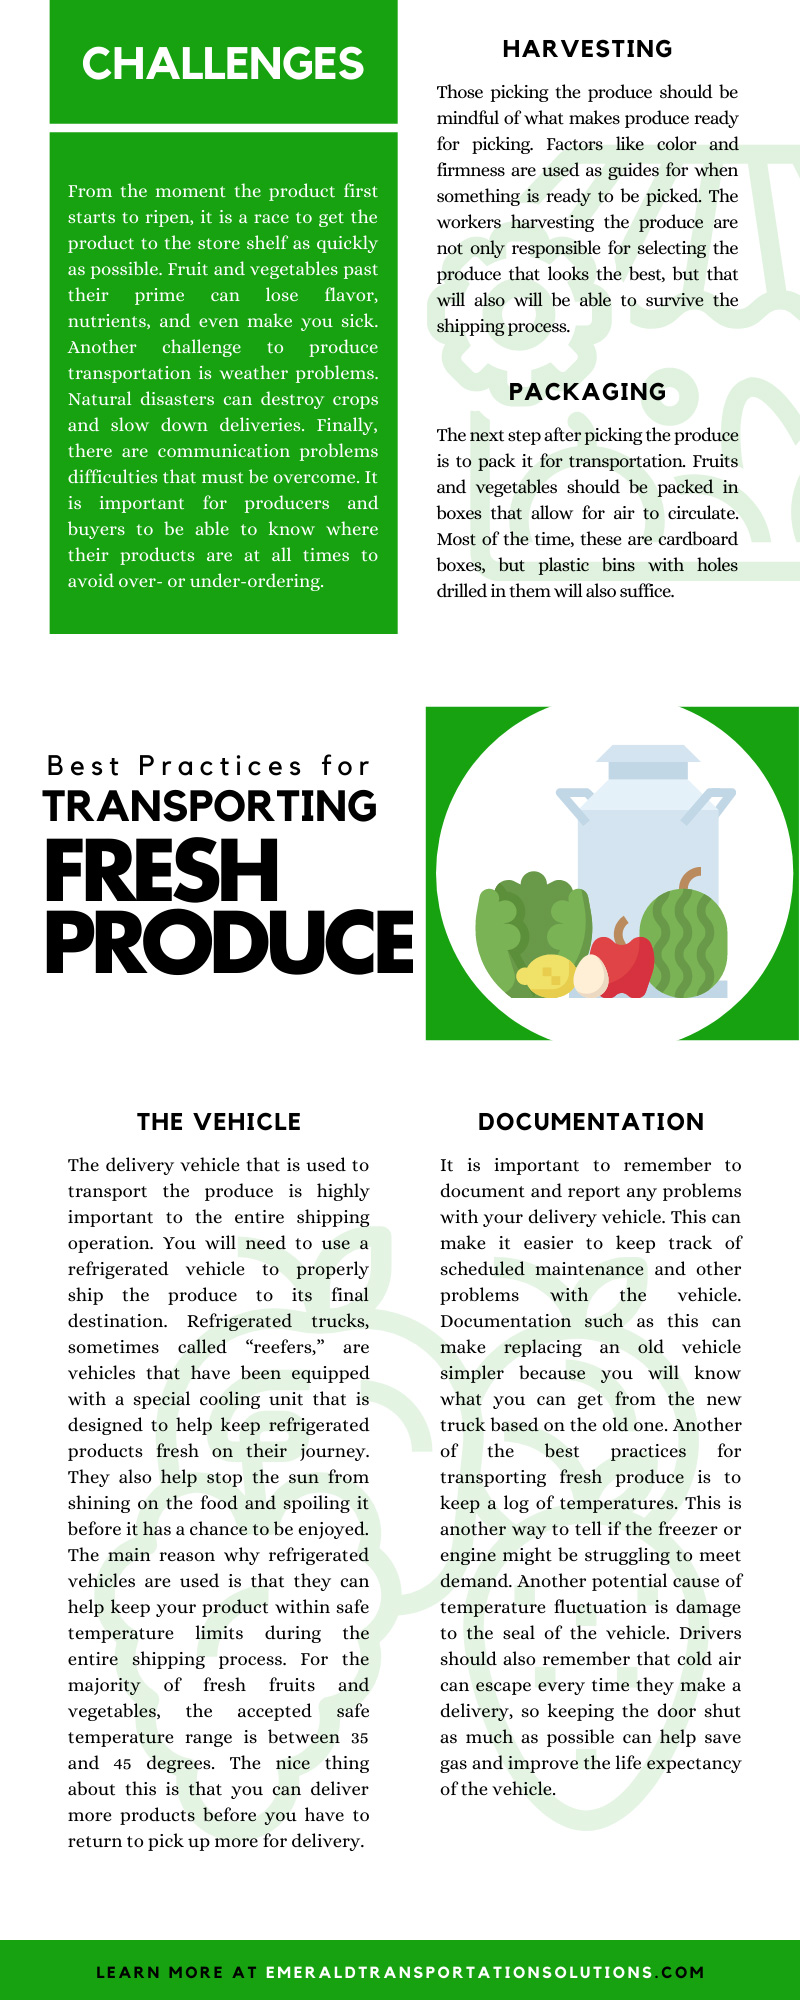 Best Practices for Transporting Fresh Produce